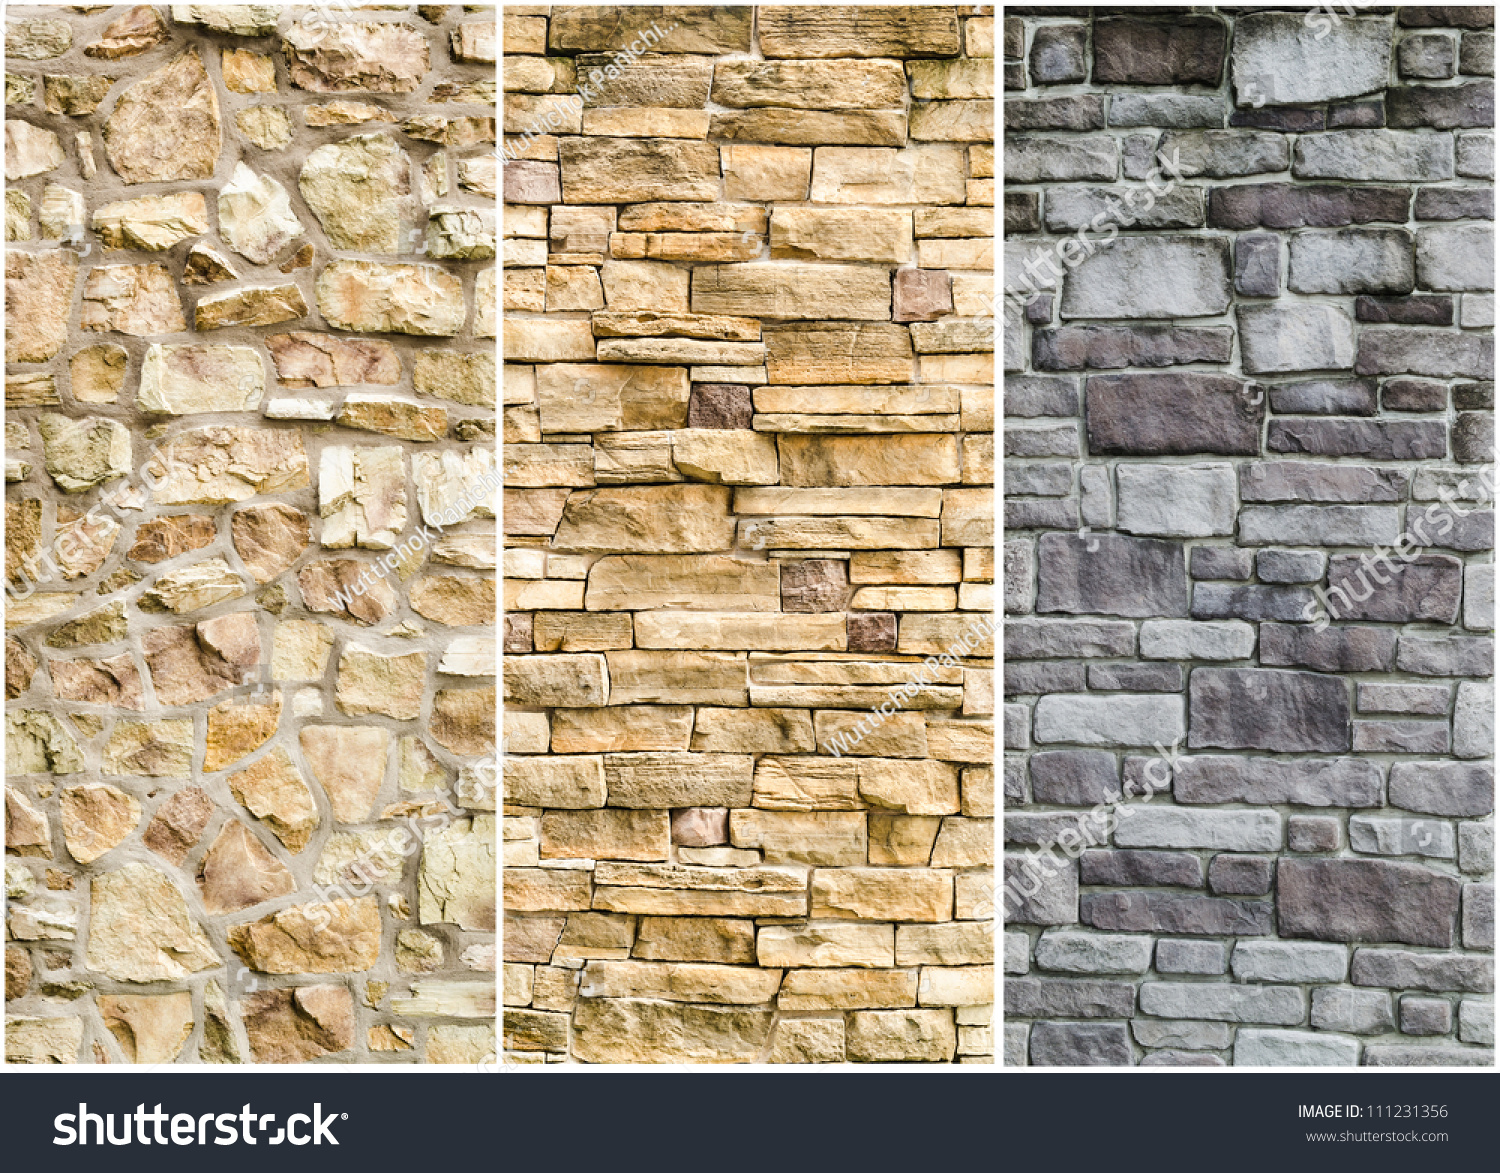 Enchanting Decorative Stone Wall Cladding Vignette - Wall Art ...